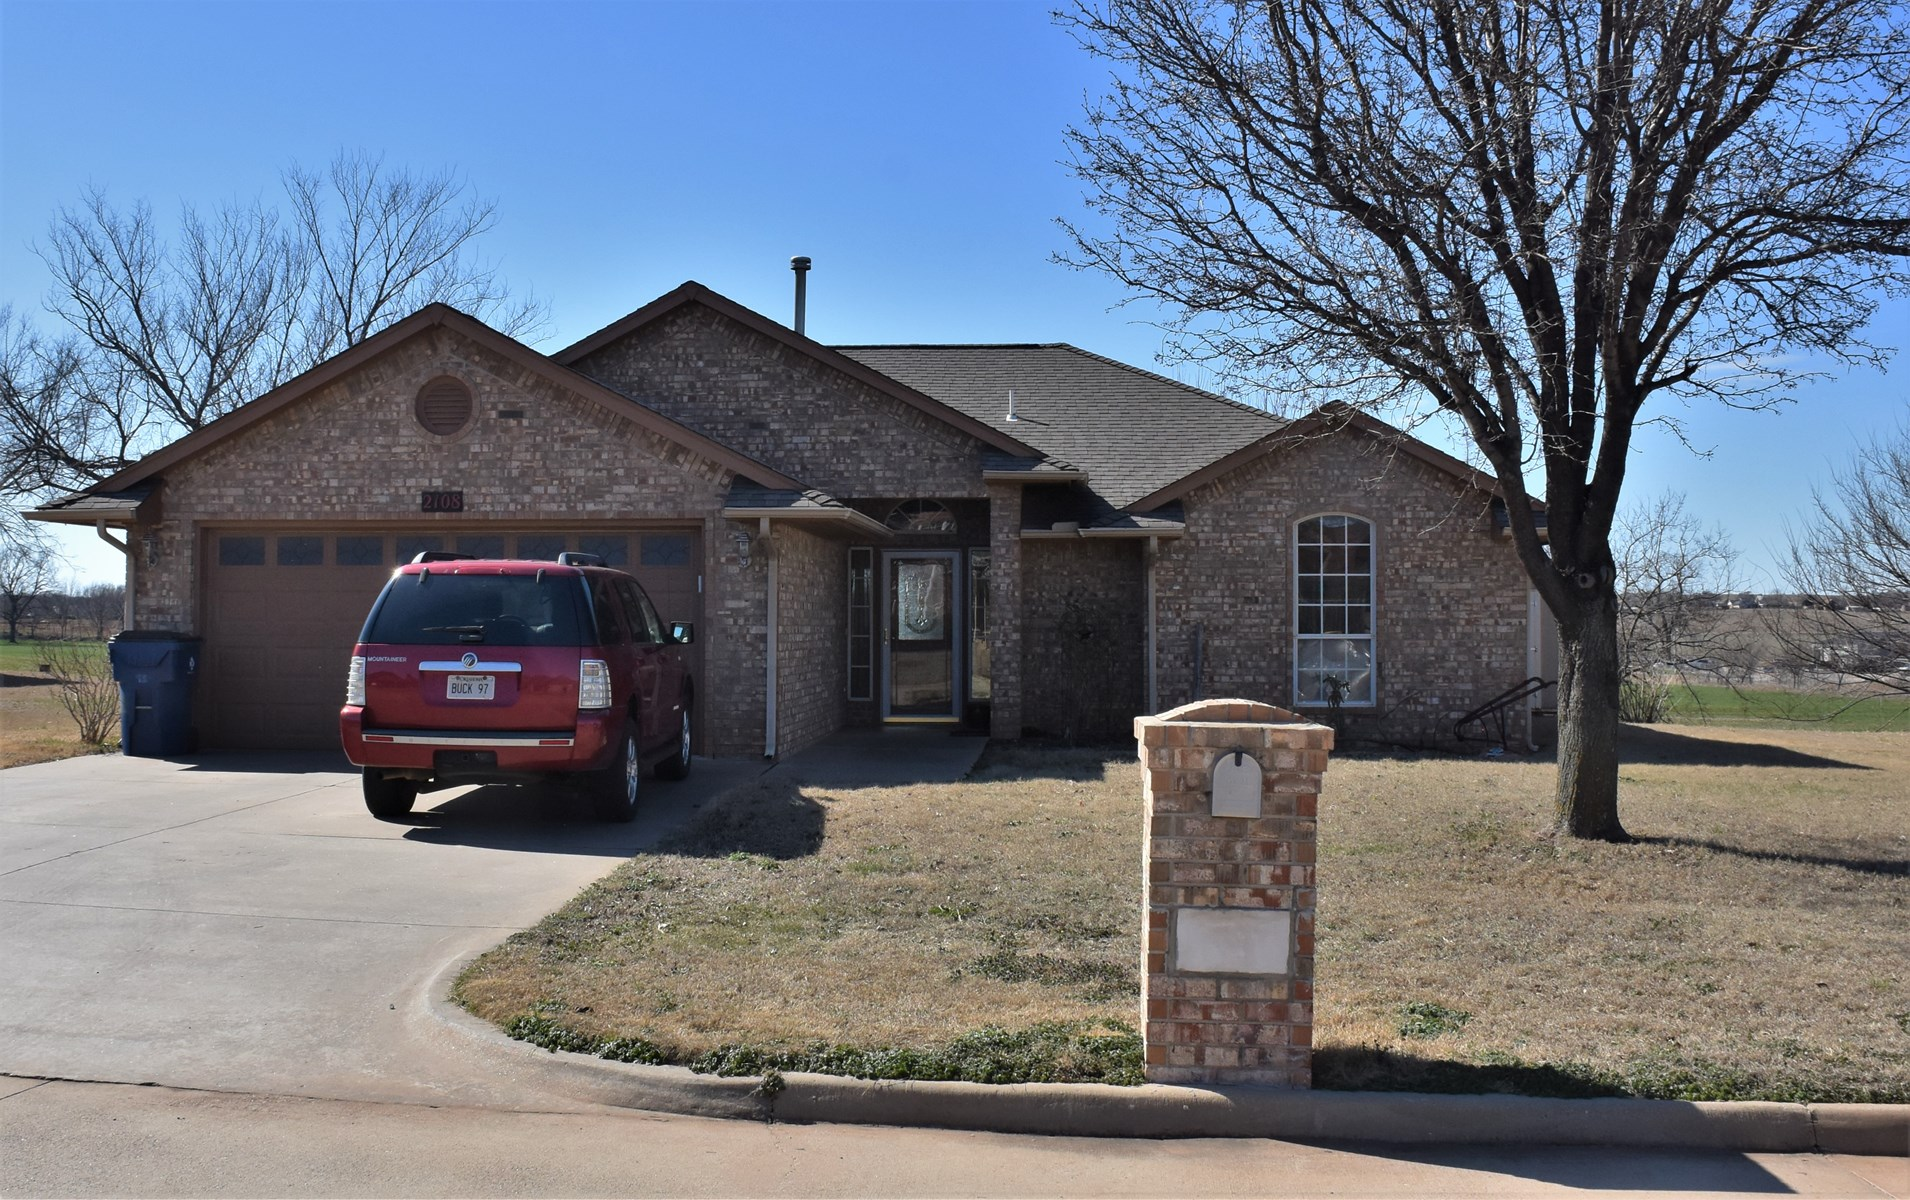 Country Home - Chickasha Oklahoma - Country Views - Commute